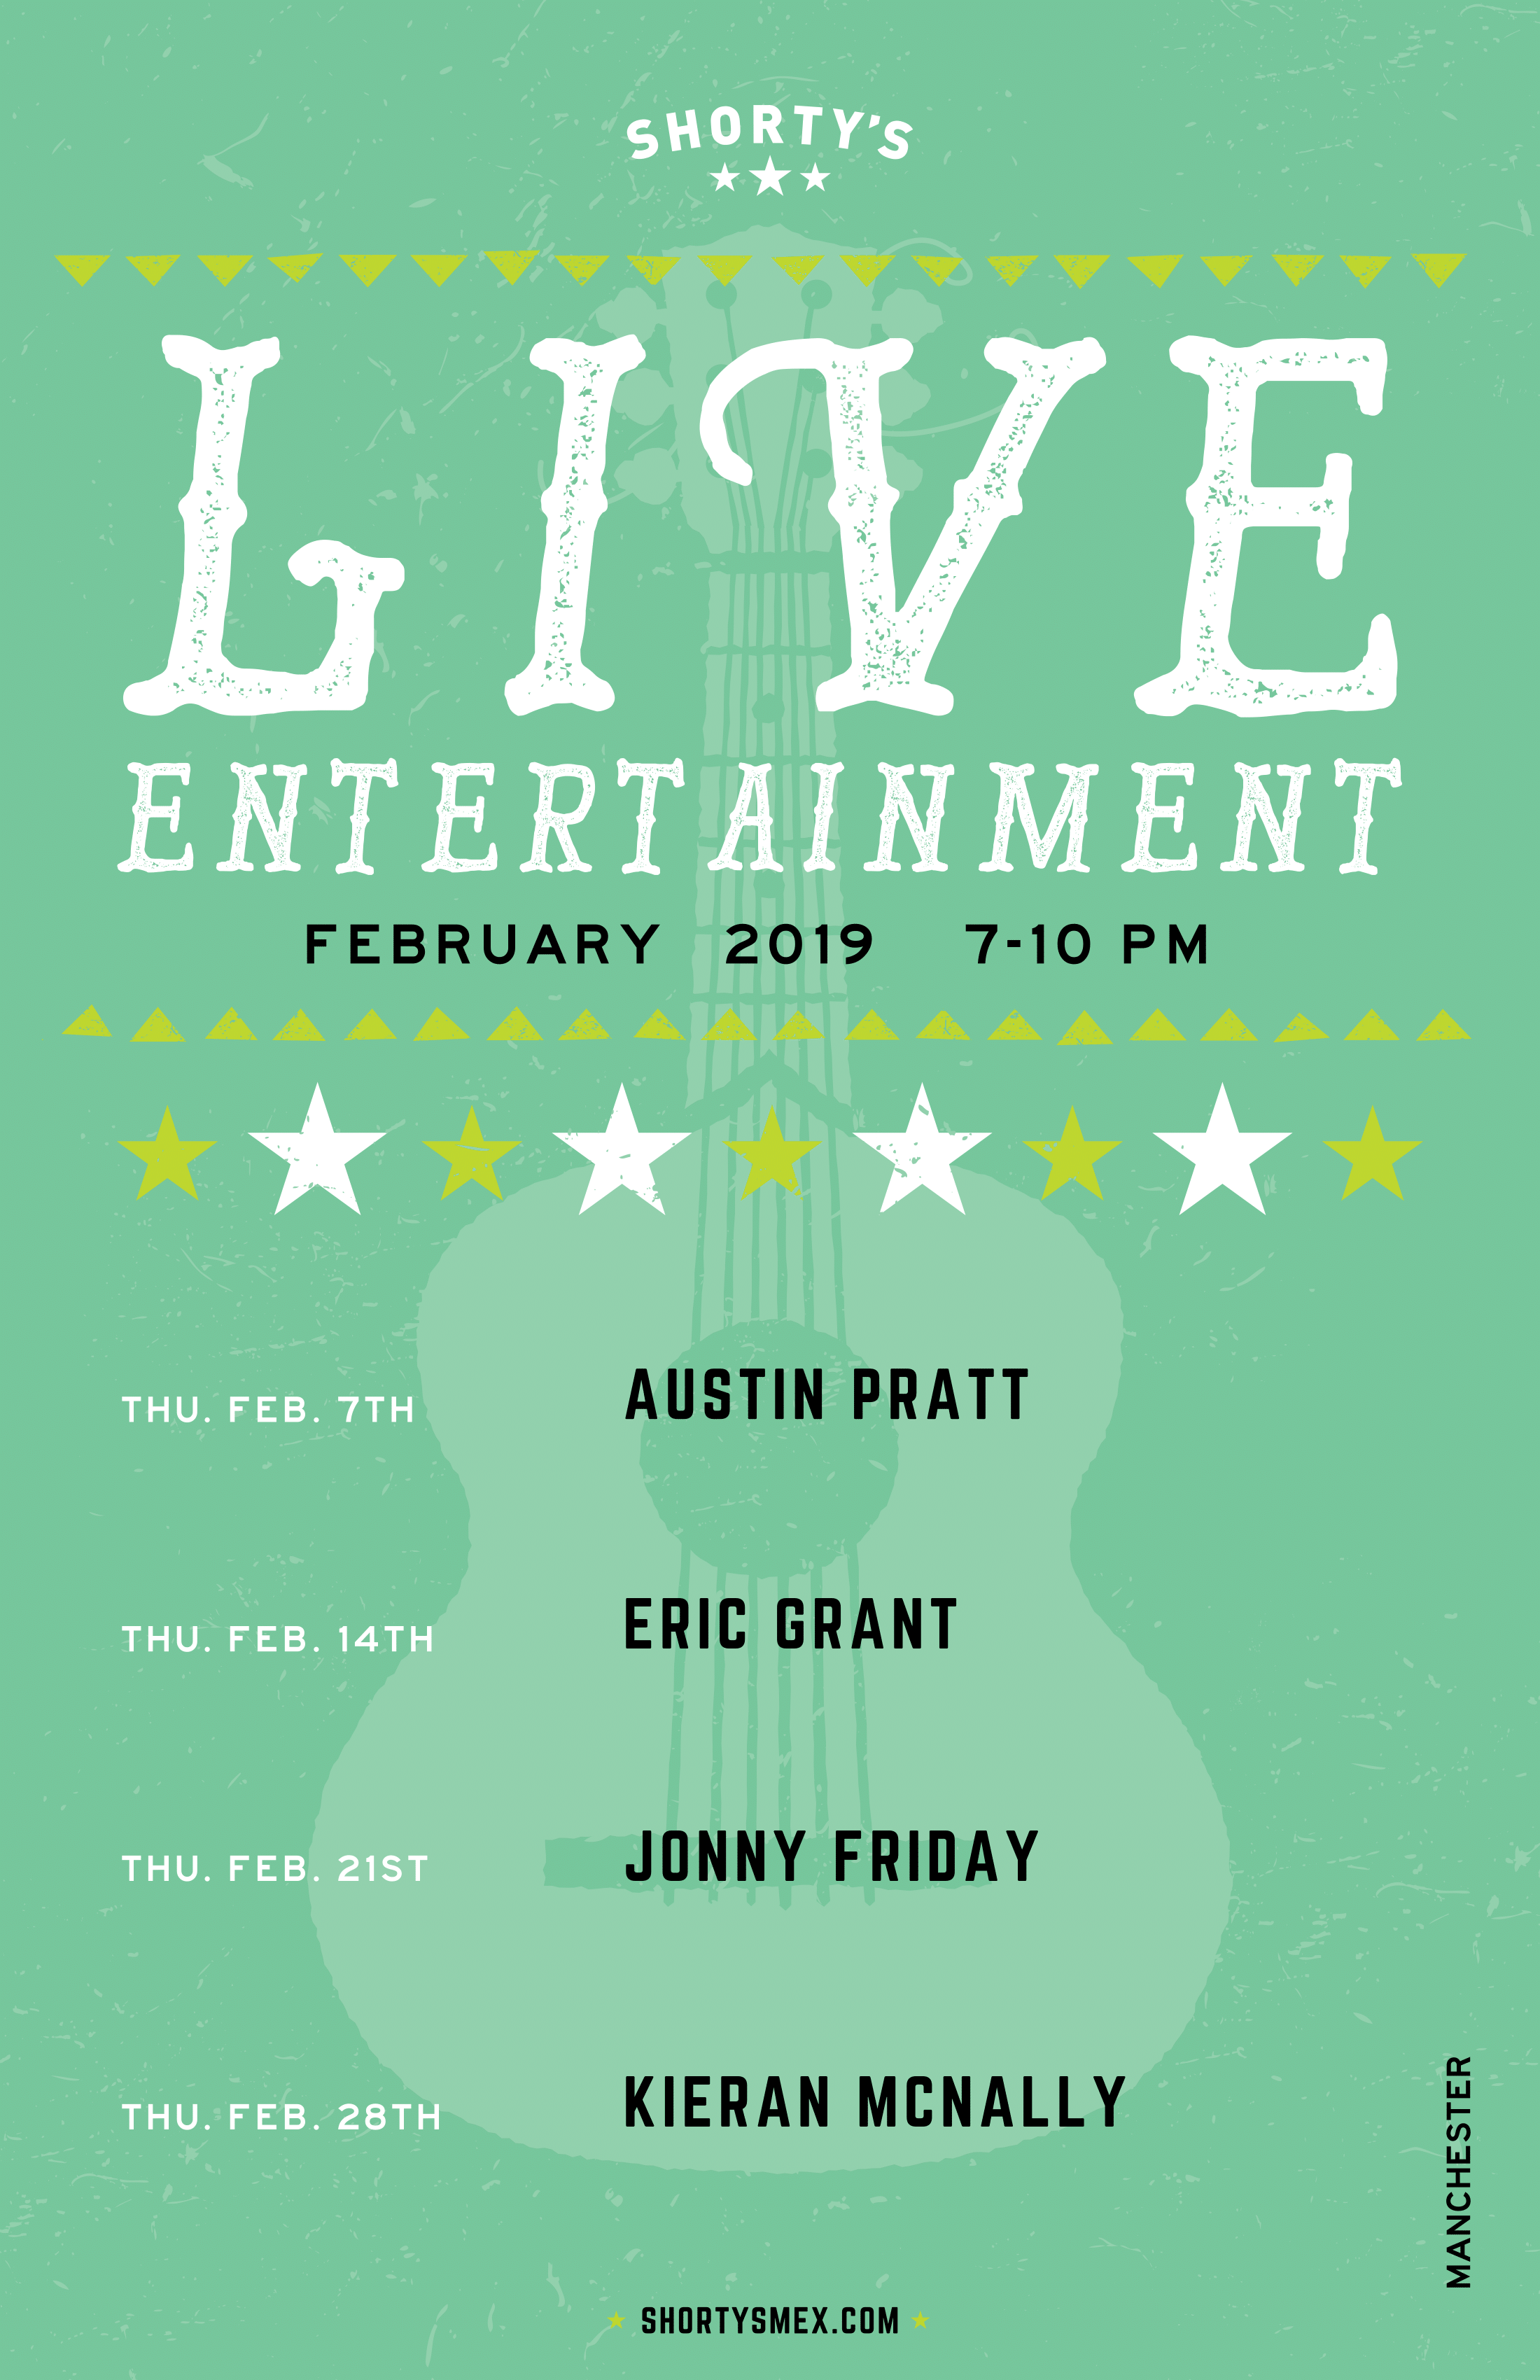 Shorty's Live Entertainment Calendar - February in Manchester